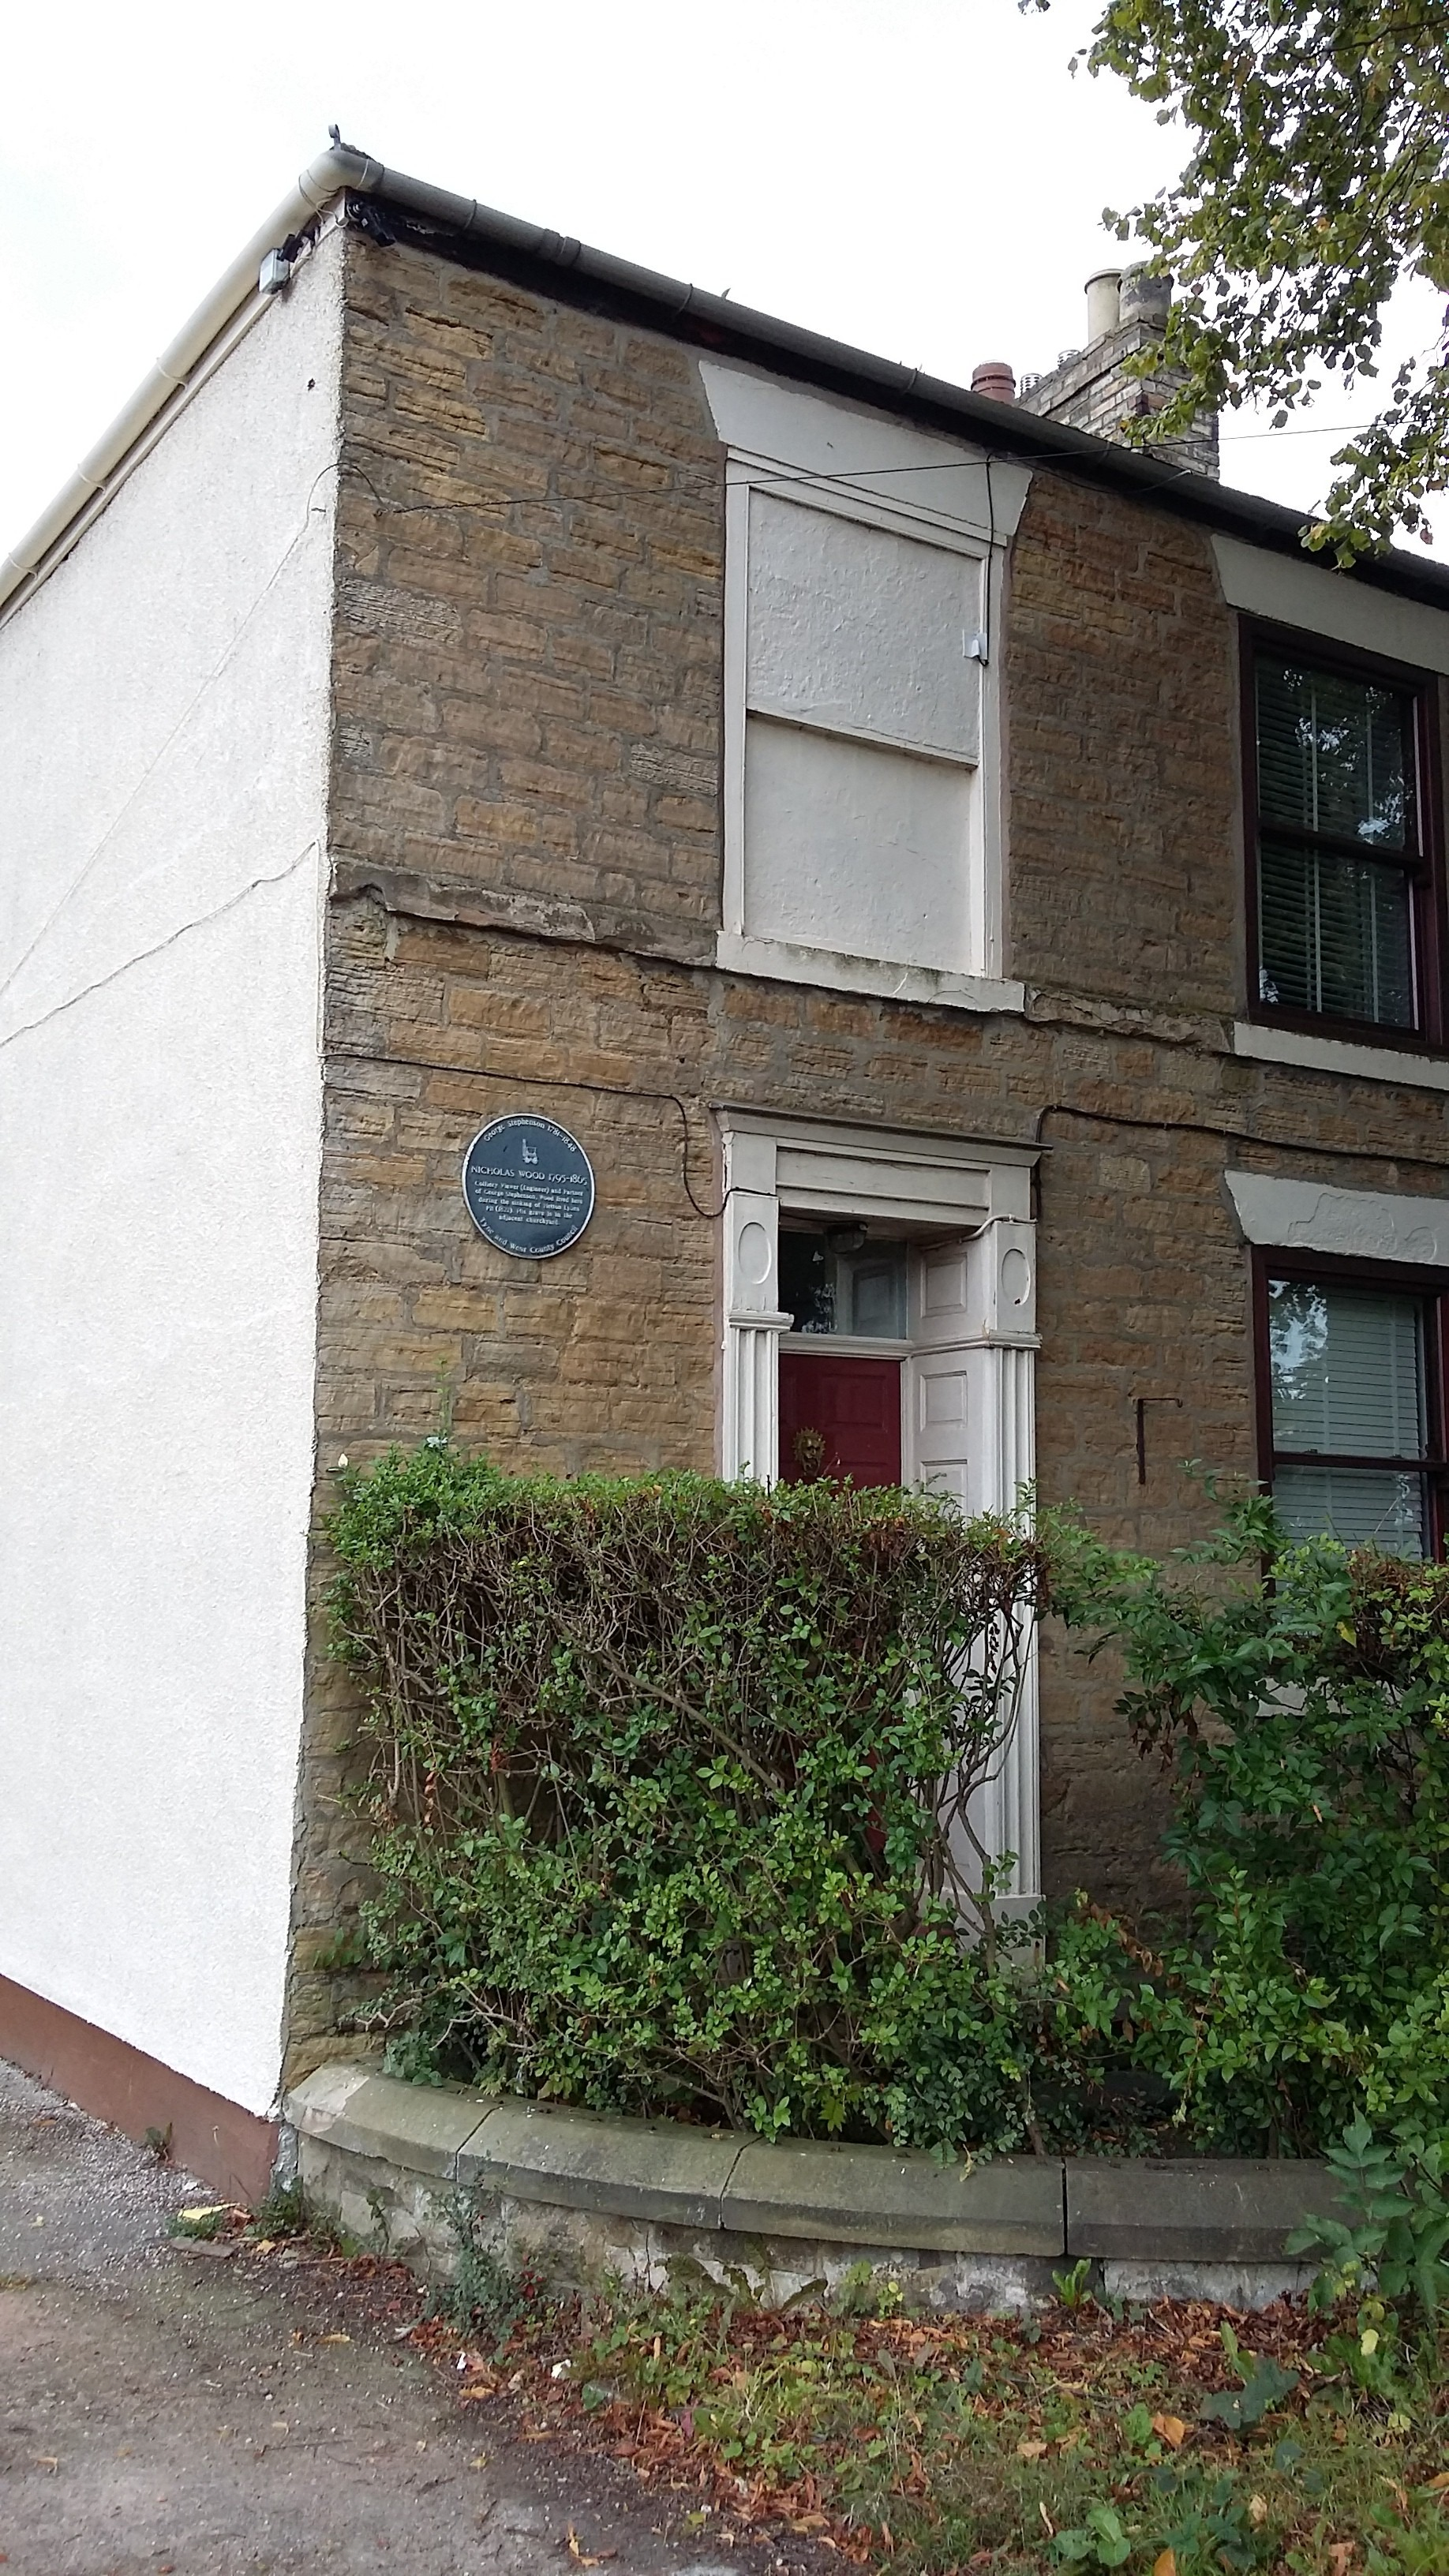 Nicholas Wood's blue plaque